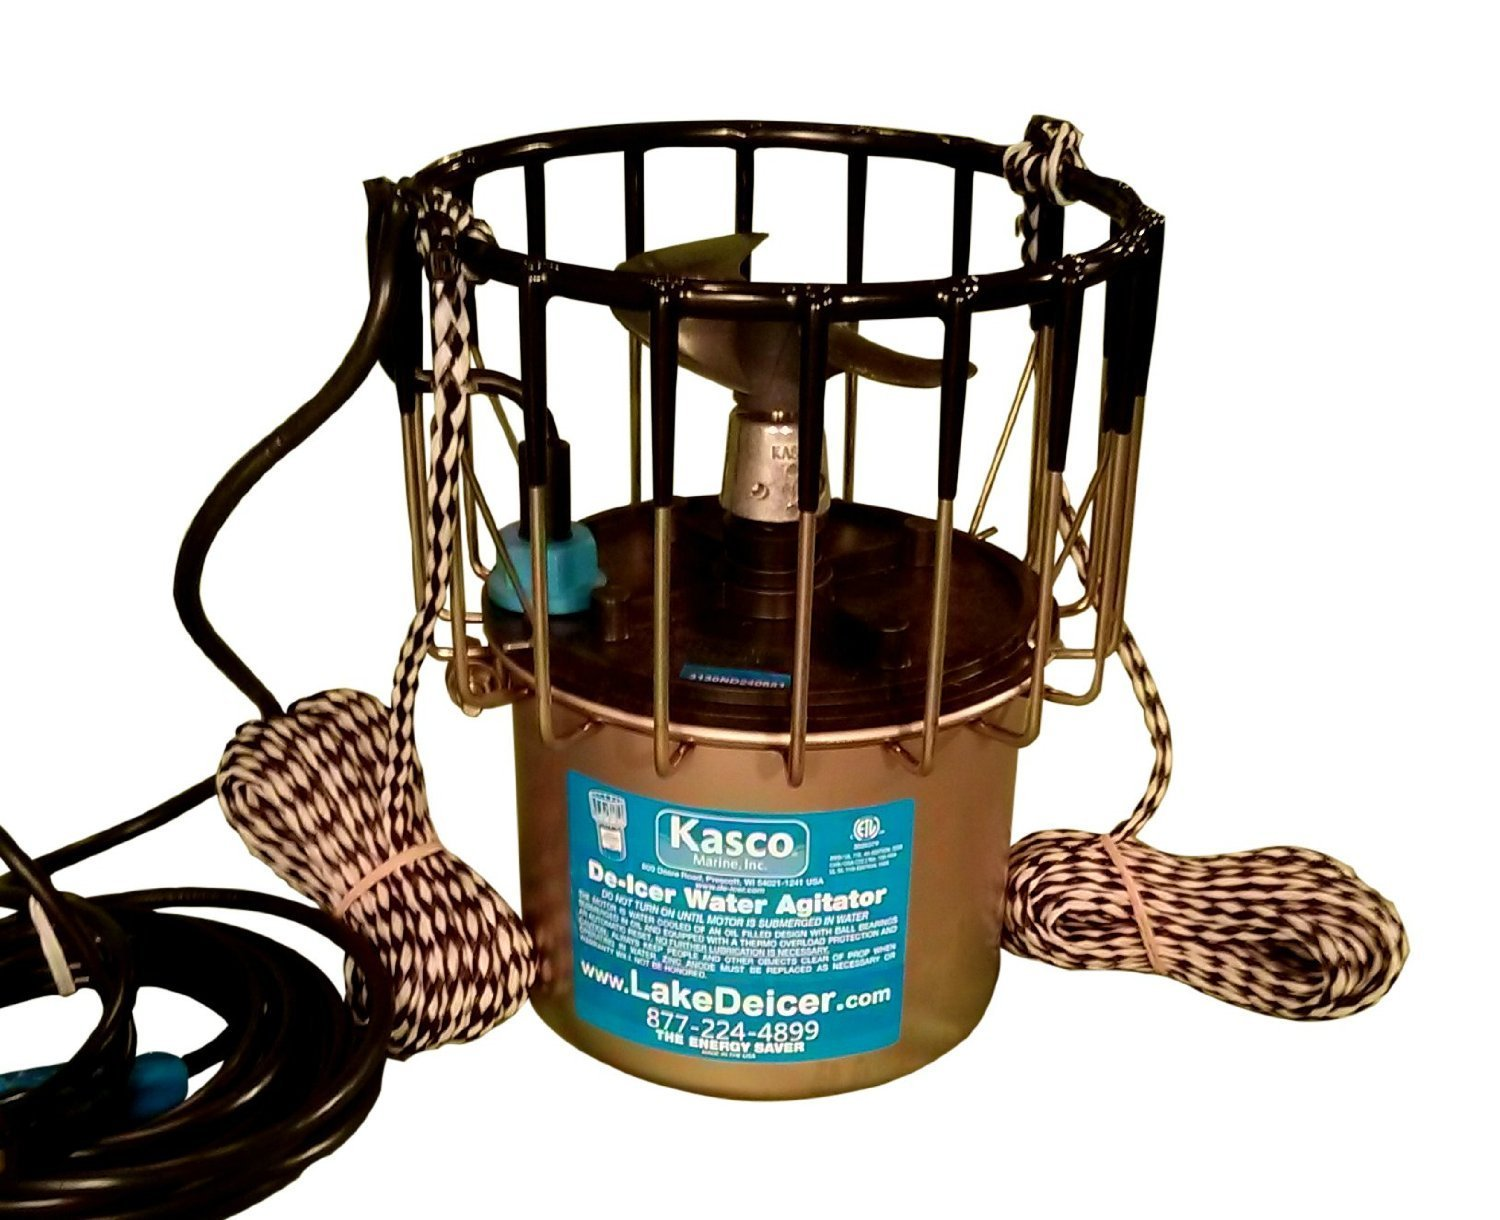 Kasco Marine 2400D025 - De-Icer, 1/2hp, 120 volts, Clears A Circle Up To 50' Diameter, 25' Cord by Kasco